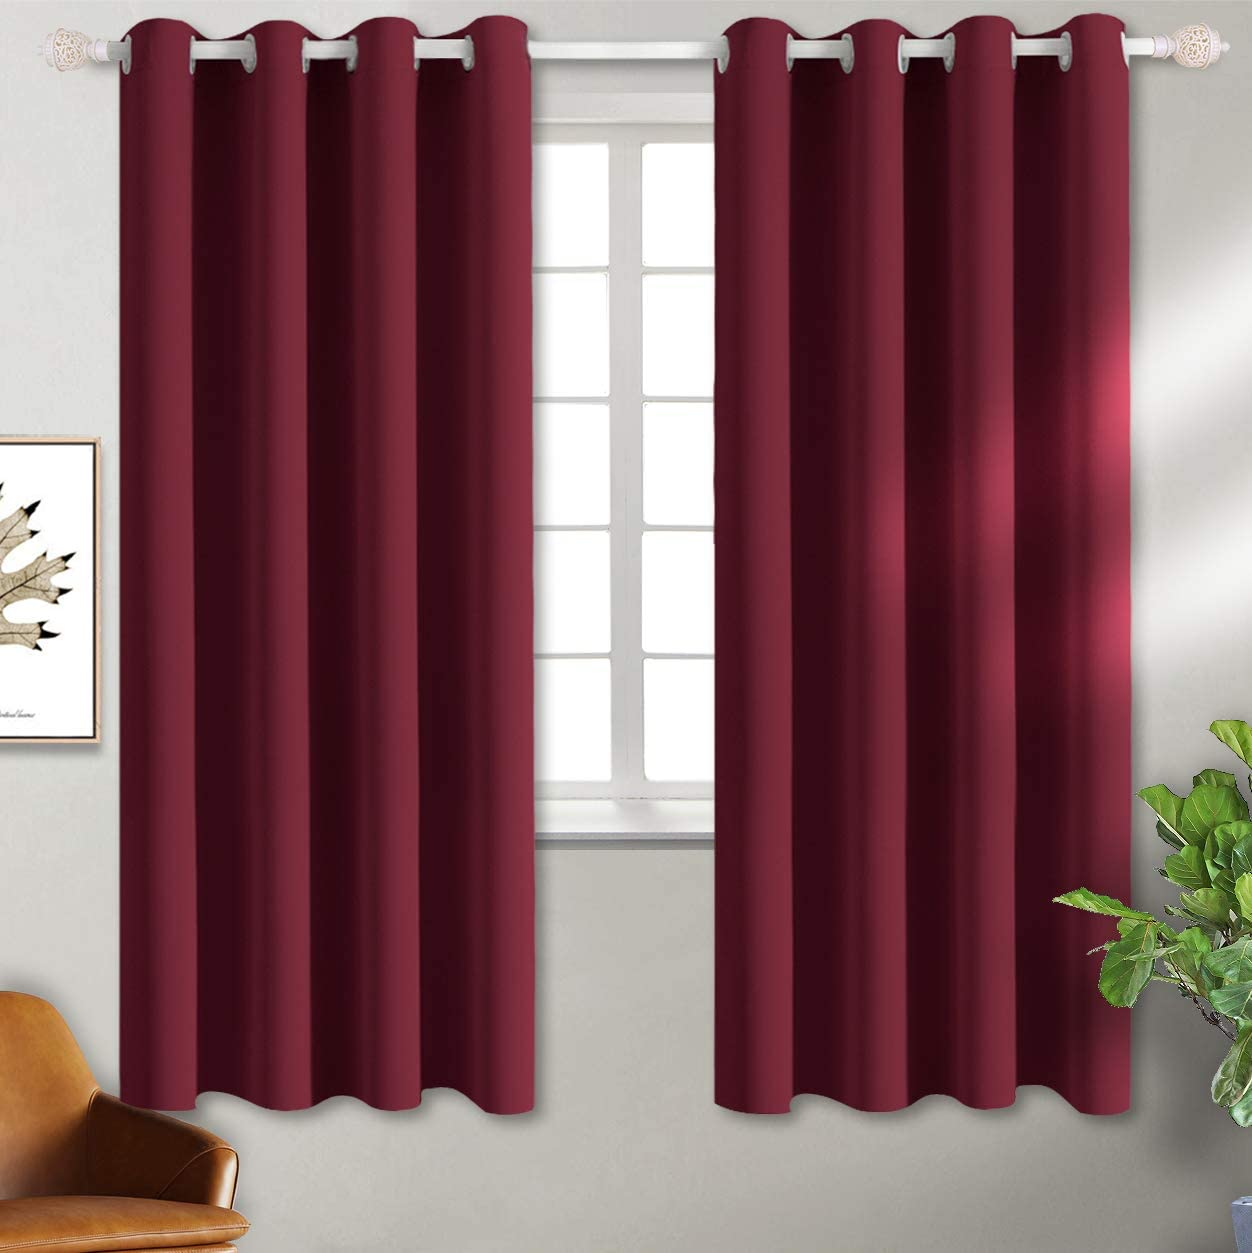 BGment Blackout Curtains - Grommet Thermal Insulated Room Darkening Bedroom and Living Room Curtains, Set of 2 Curtain Panels (52 x 63 Inch, Burgundy)